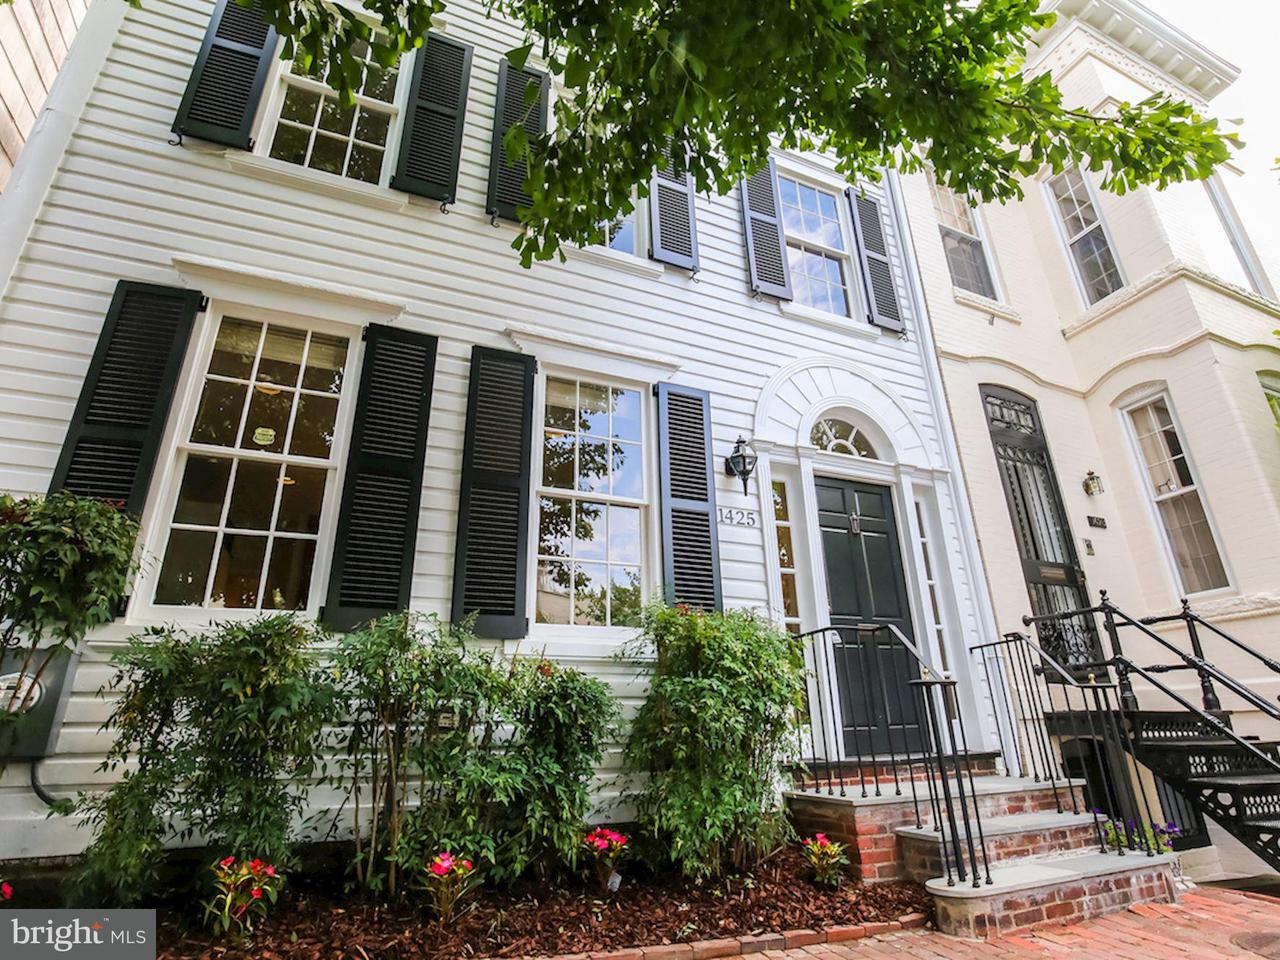 Townhouse for Sale at 1425 34TH ST NW 1425 34TH ST NW Washington, District Of Columbia 20007 United States